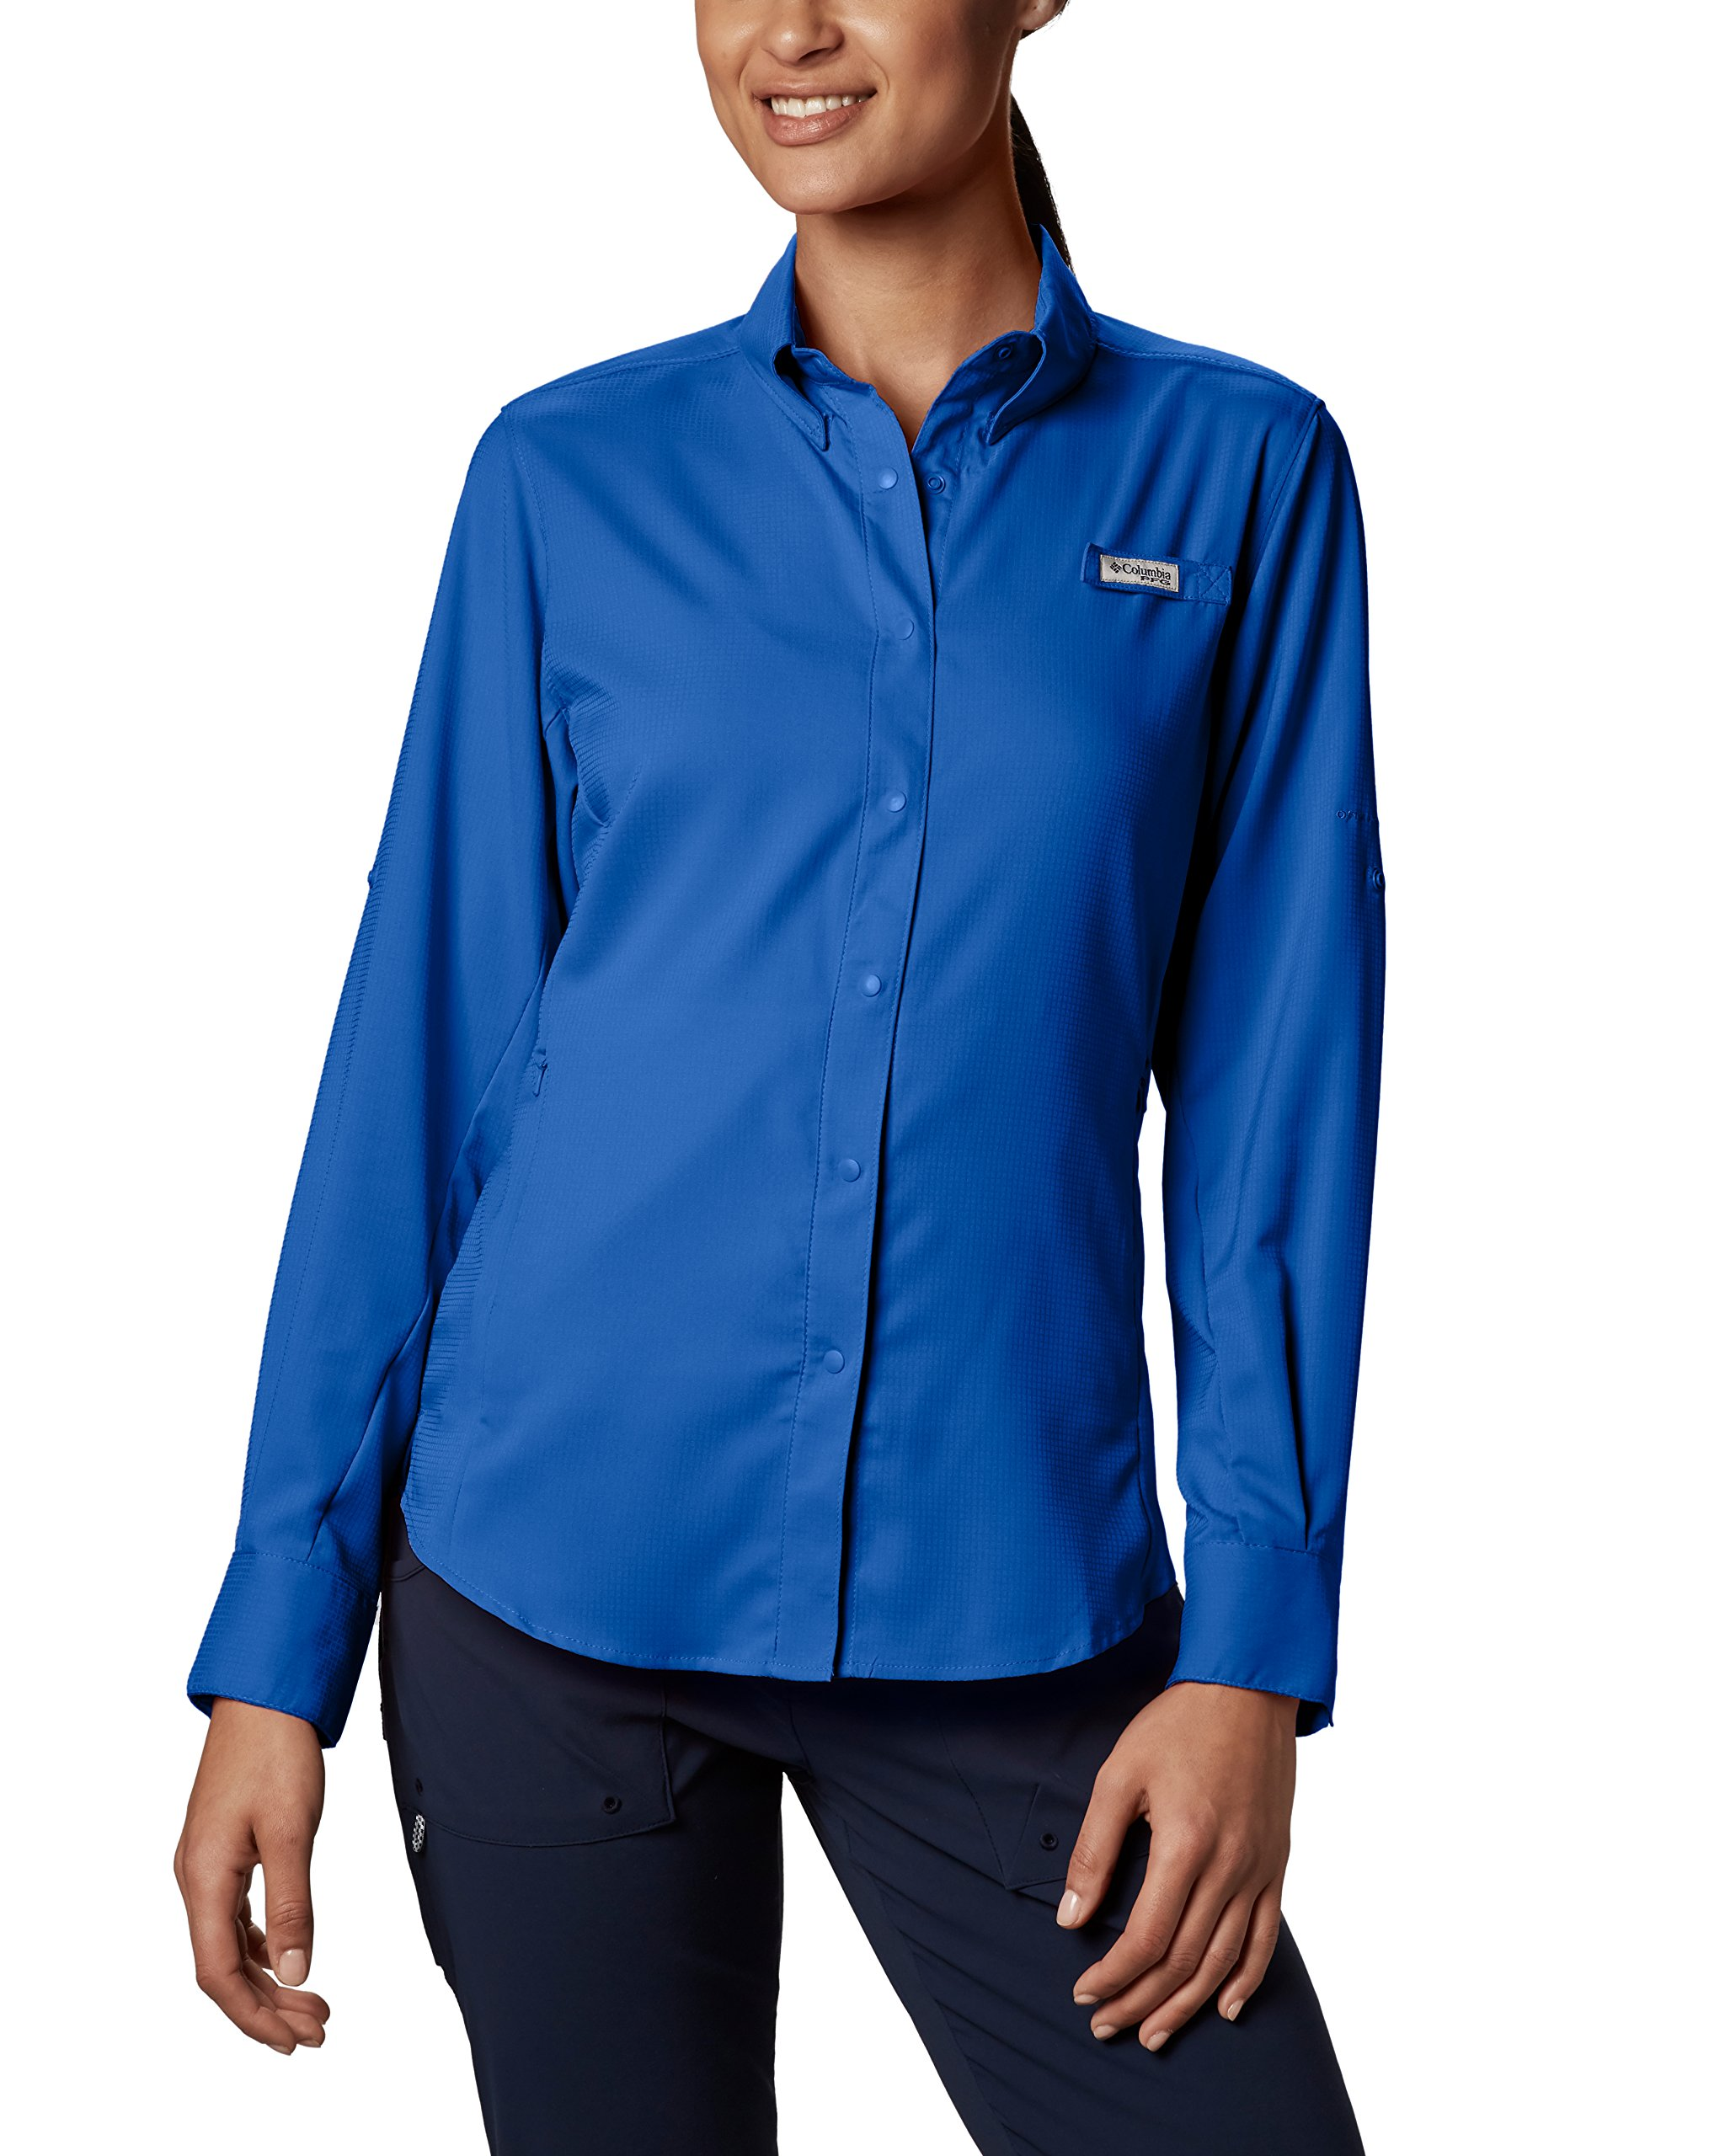 Columbia Women's PFG Tamiami II Long Sleeve Shirt , Blue Macaw, Large by Columbia